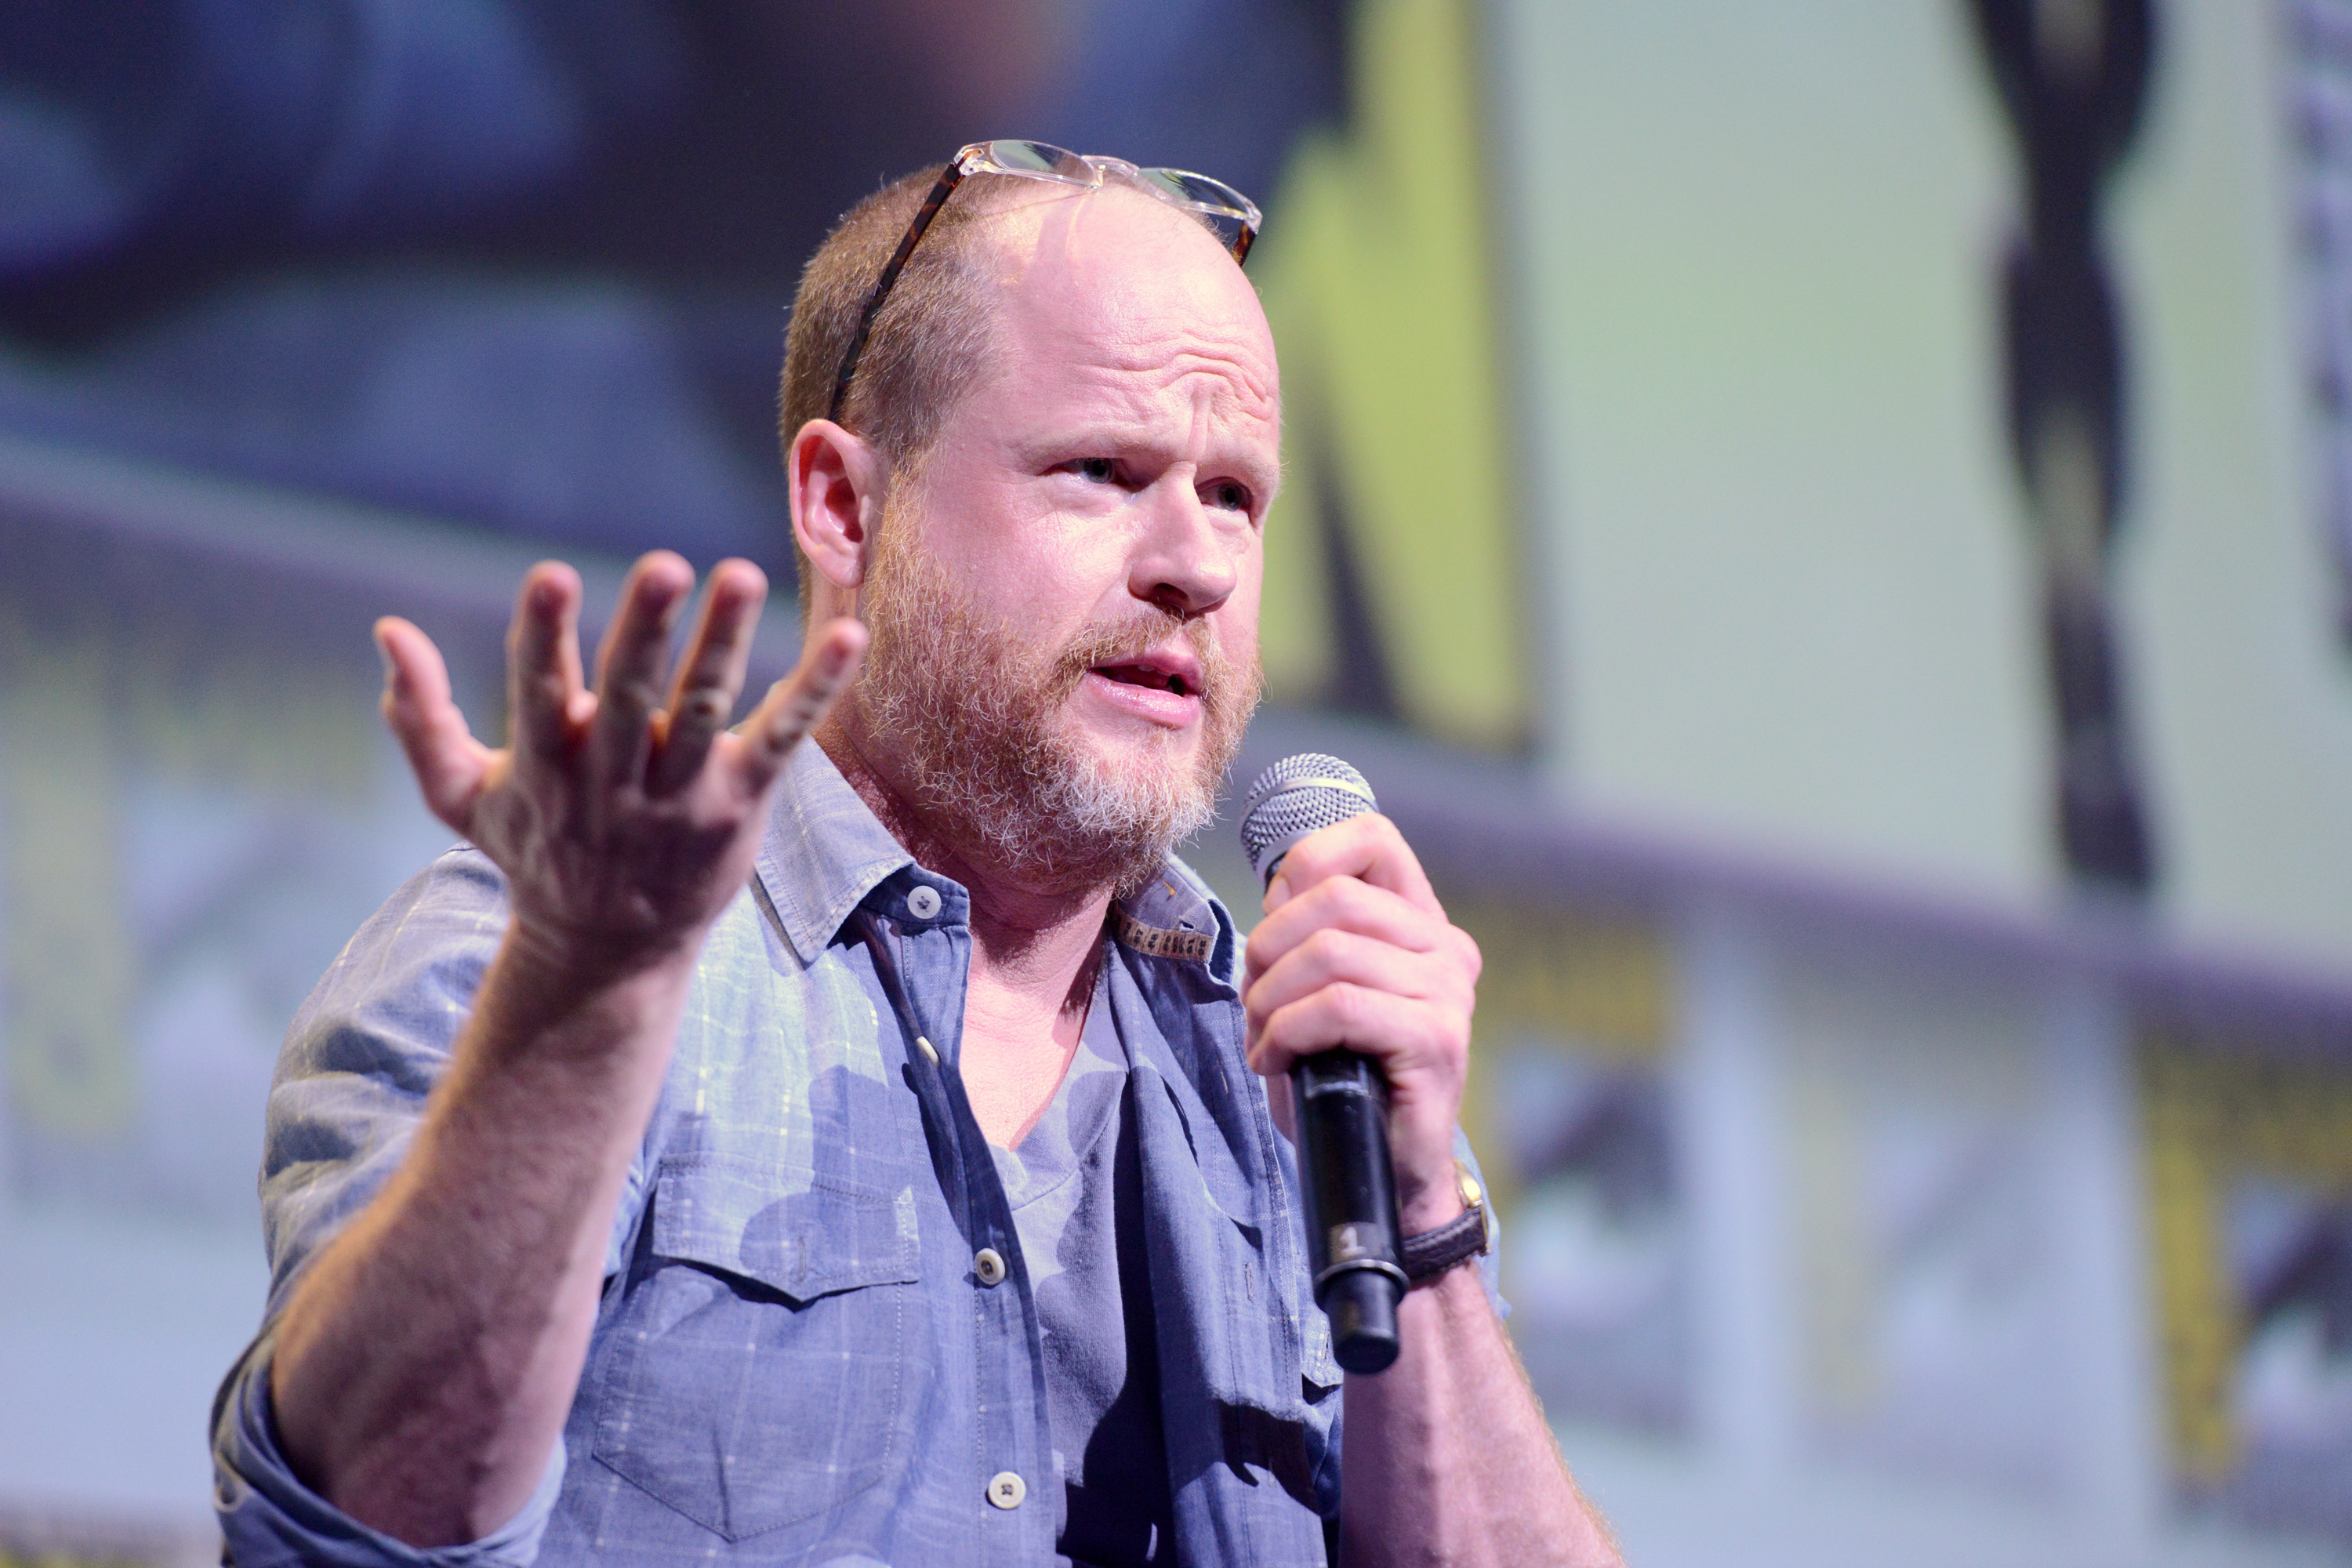 Writer/director Joss Whedon attends Dark Horse: Conversations With Joss Whedon during Comic-Con International 2016 at San Diego Convention Center on July 22, 2016 in San Diego, California. (Photo by Albert L. Ortega/Getty Images)